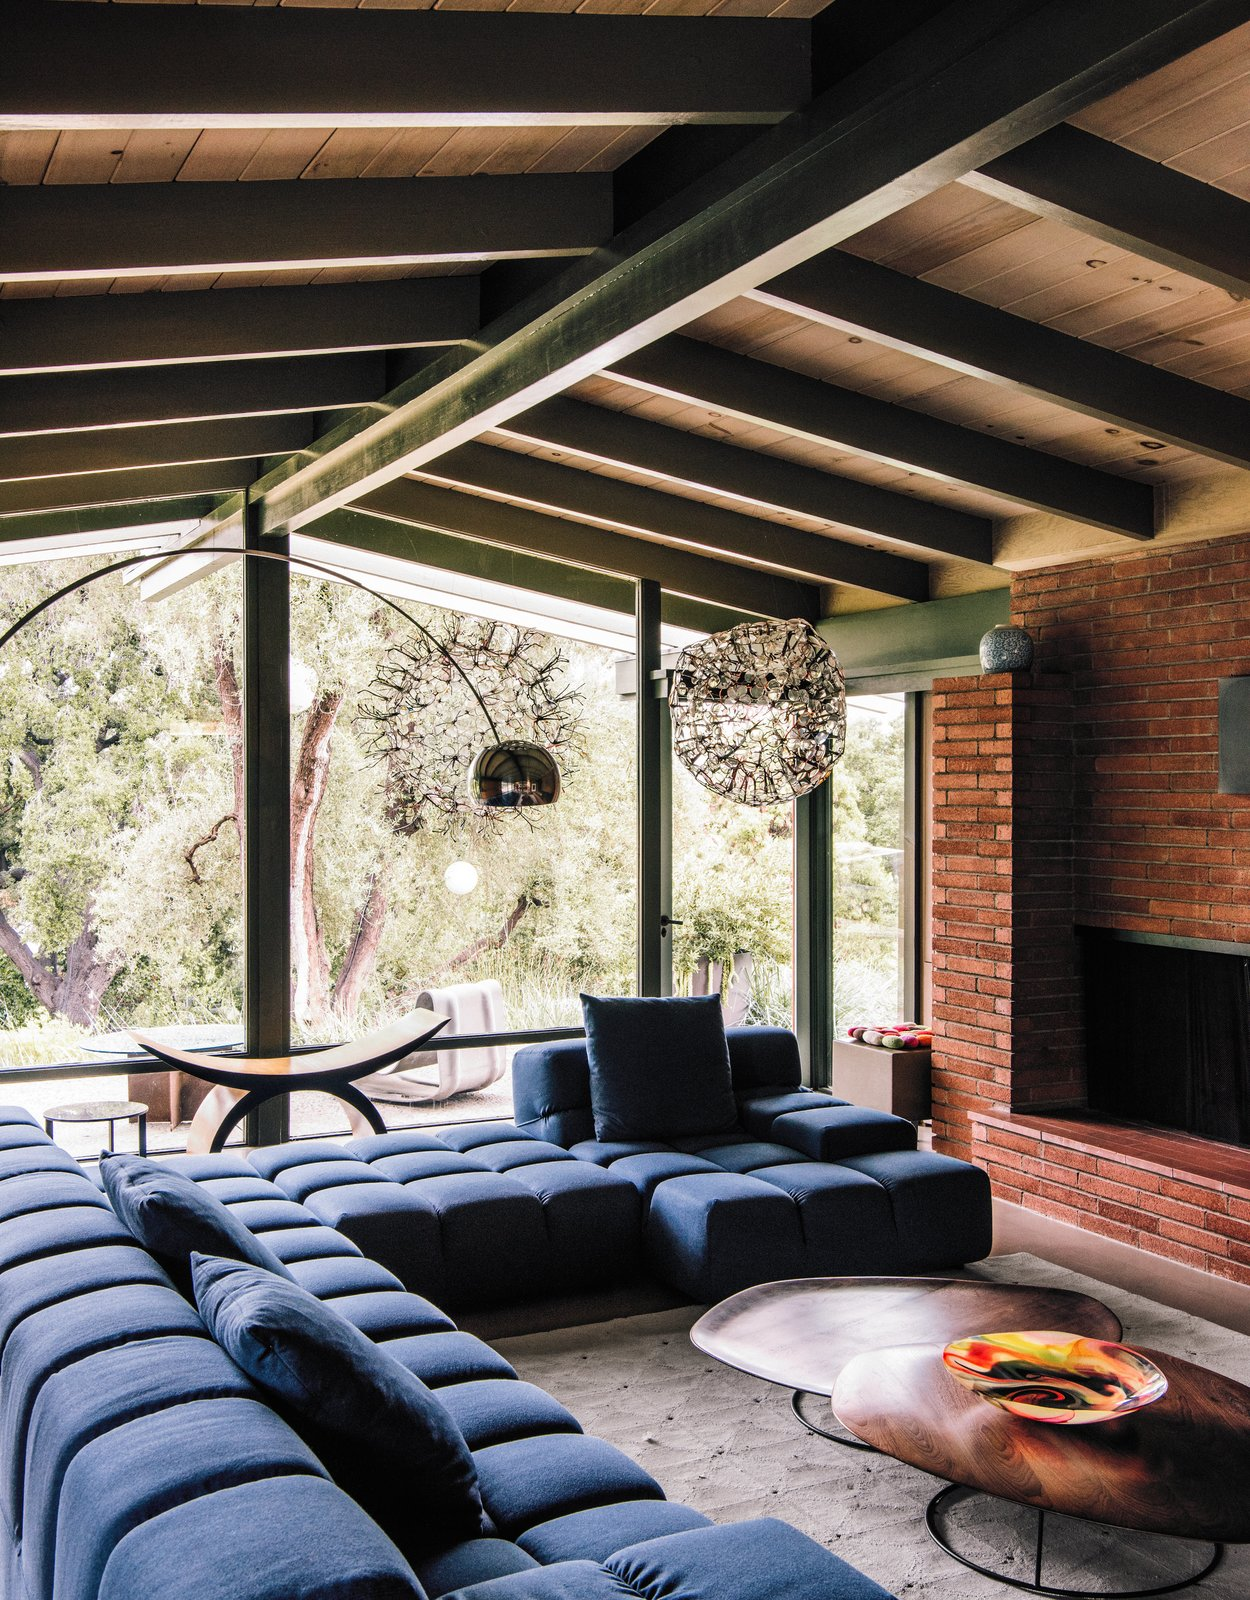 Living Room, Chair, Ottomans, Sofa, Sectional, Coffee Tables, Table, and Floor Lighting The architects maintained the midcentury post-and-beam construction and Japanese-inspired details of the original building, while brightening and expanding the interior living spaces. Patricia Urquiola's Tufty-Time sofa for B&B Italia meets Pebble coffee tables by Nathan Yong for Ligne Roset in the living room.  Photo 12 of 14 in Creative Revival of a Modernist Gem